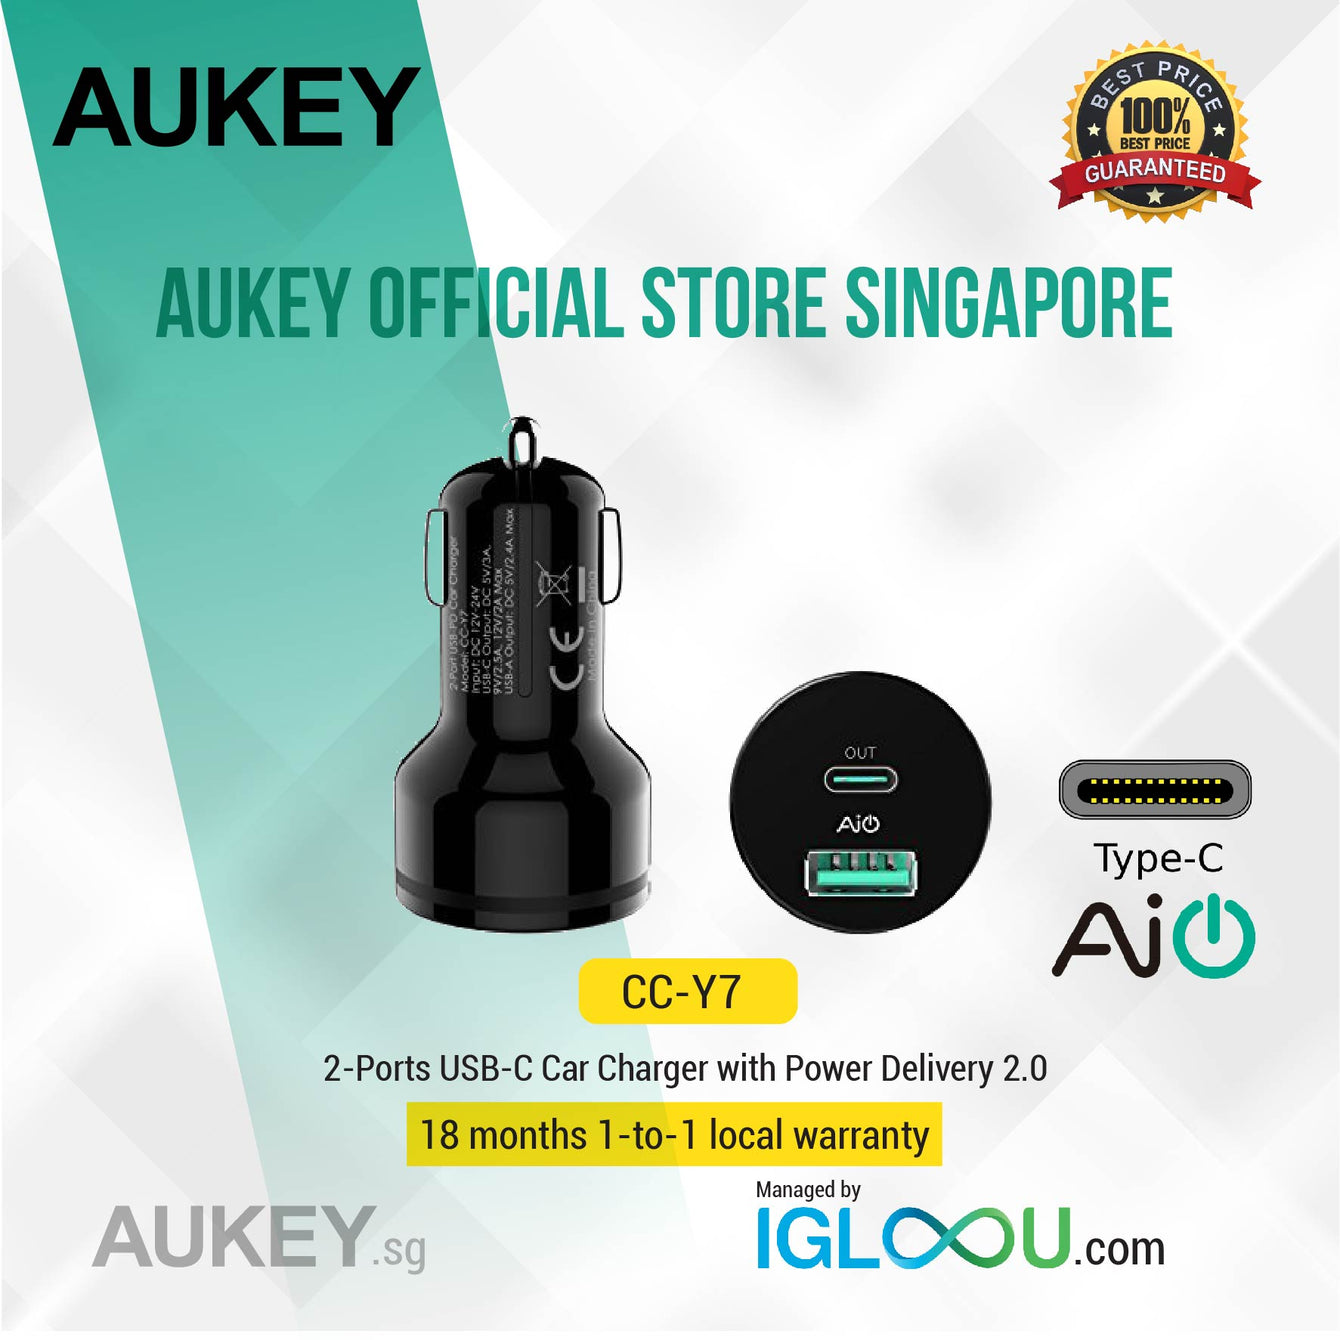 Aukey [CC-Y7] USB-C 2-Port 36W Power Delivery 2.0 Car Charger